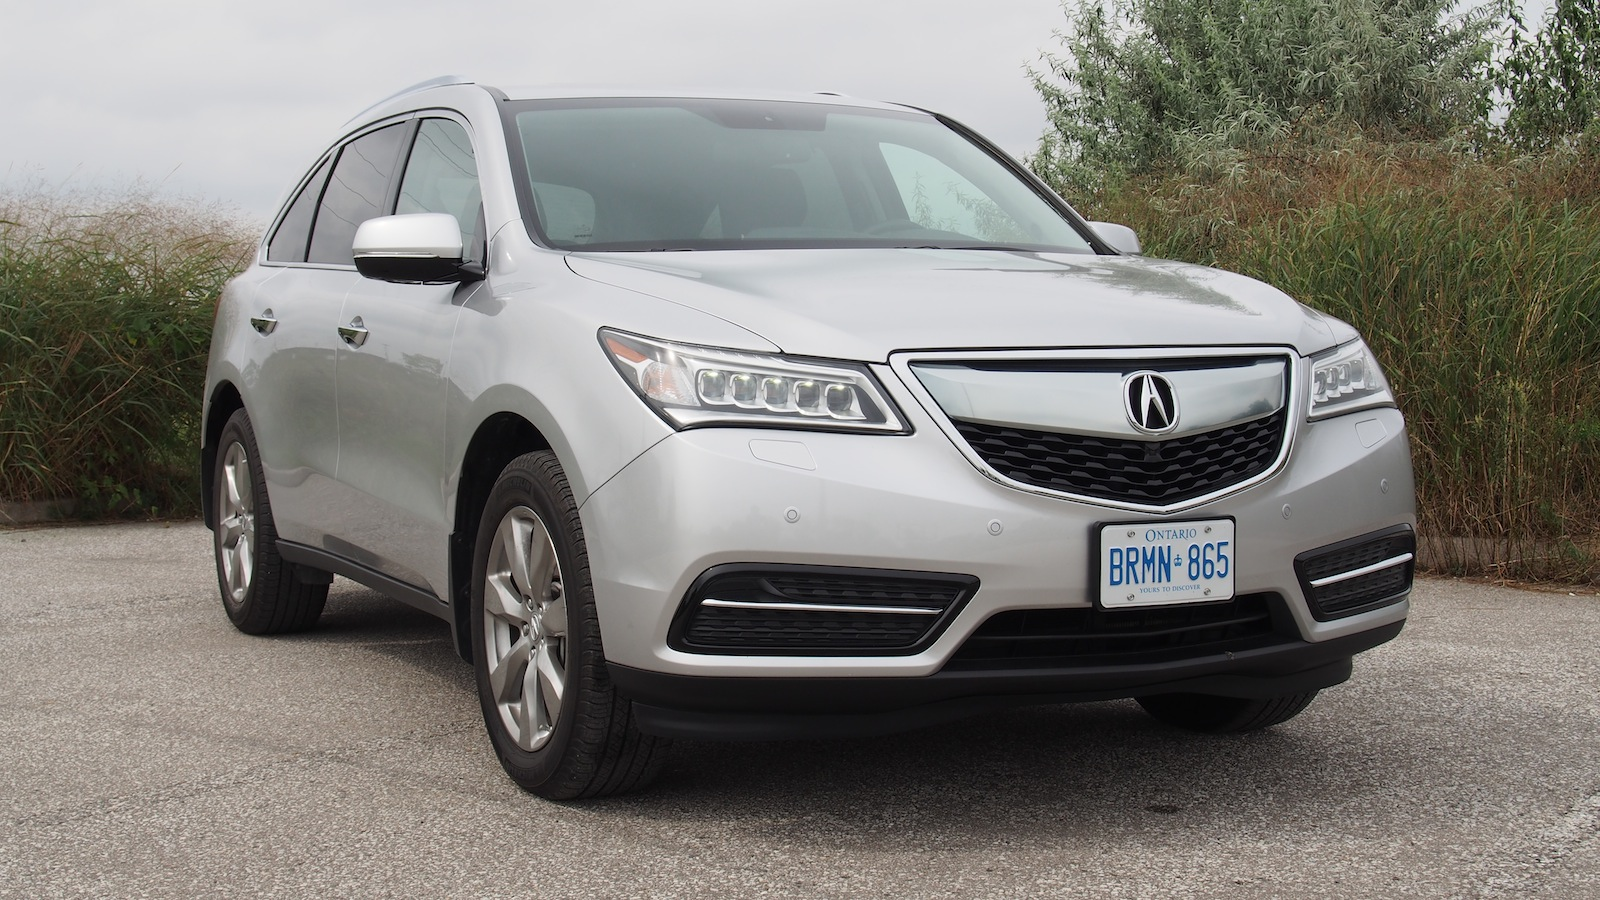 2014 acura mdx elite review cars photos test drives and reviews